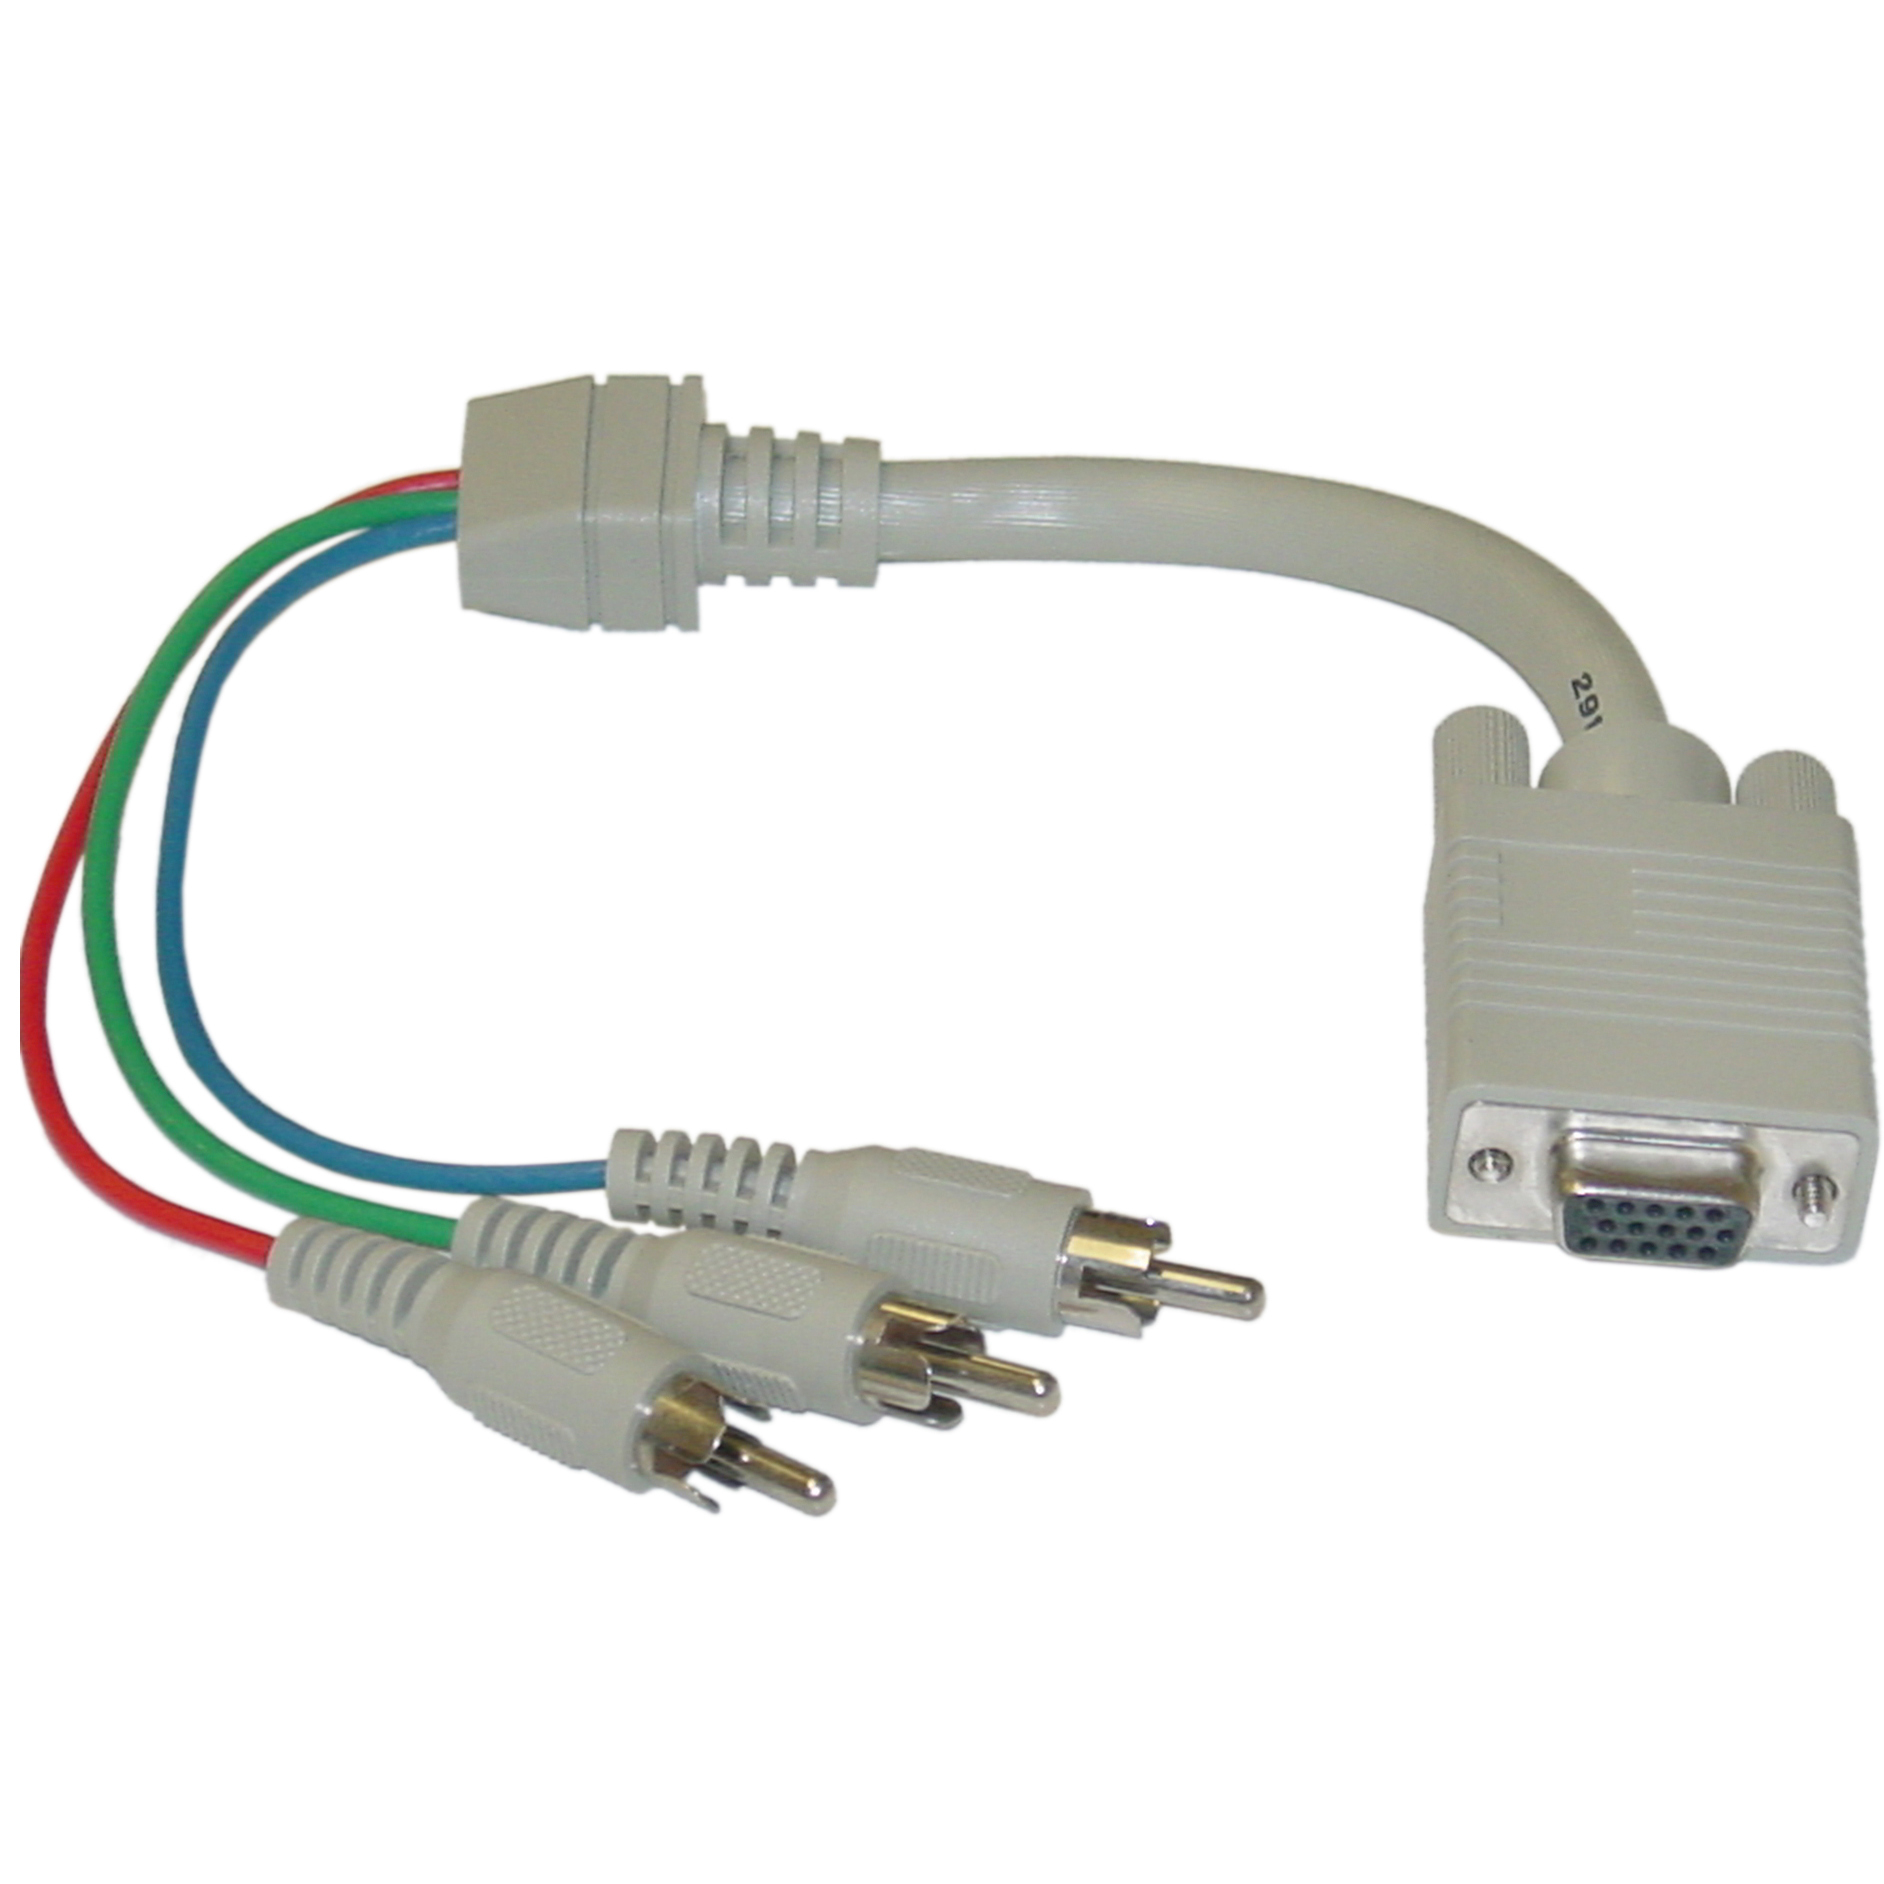 S Video To Component Video Cable Wiring Diagram | Wiring Diagram - Rs232 To Usb Cable Wiring Diagram